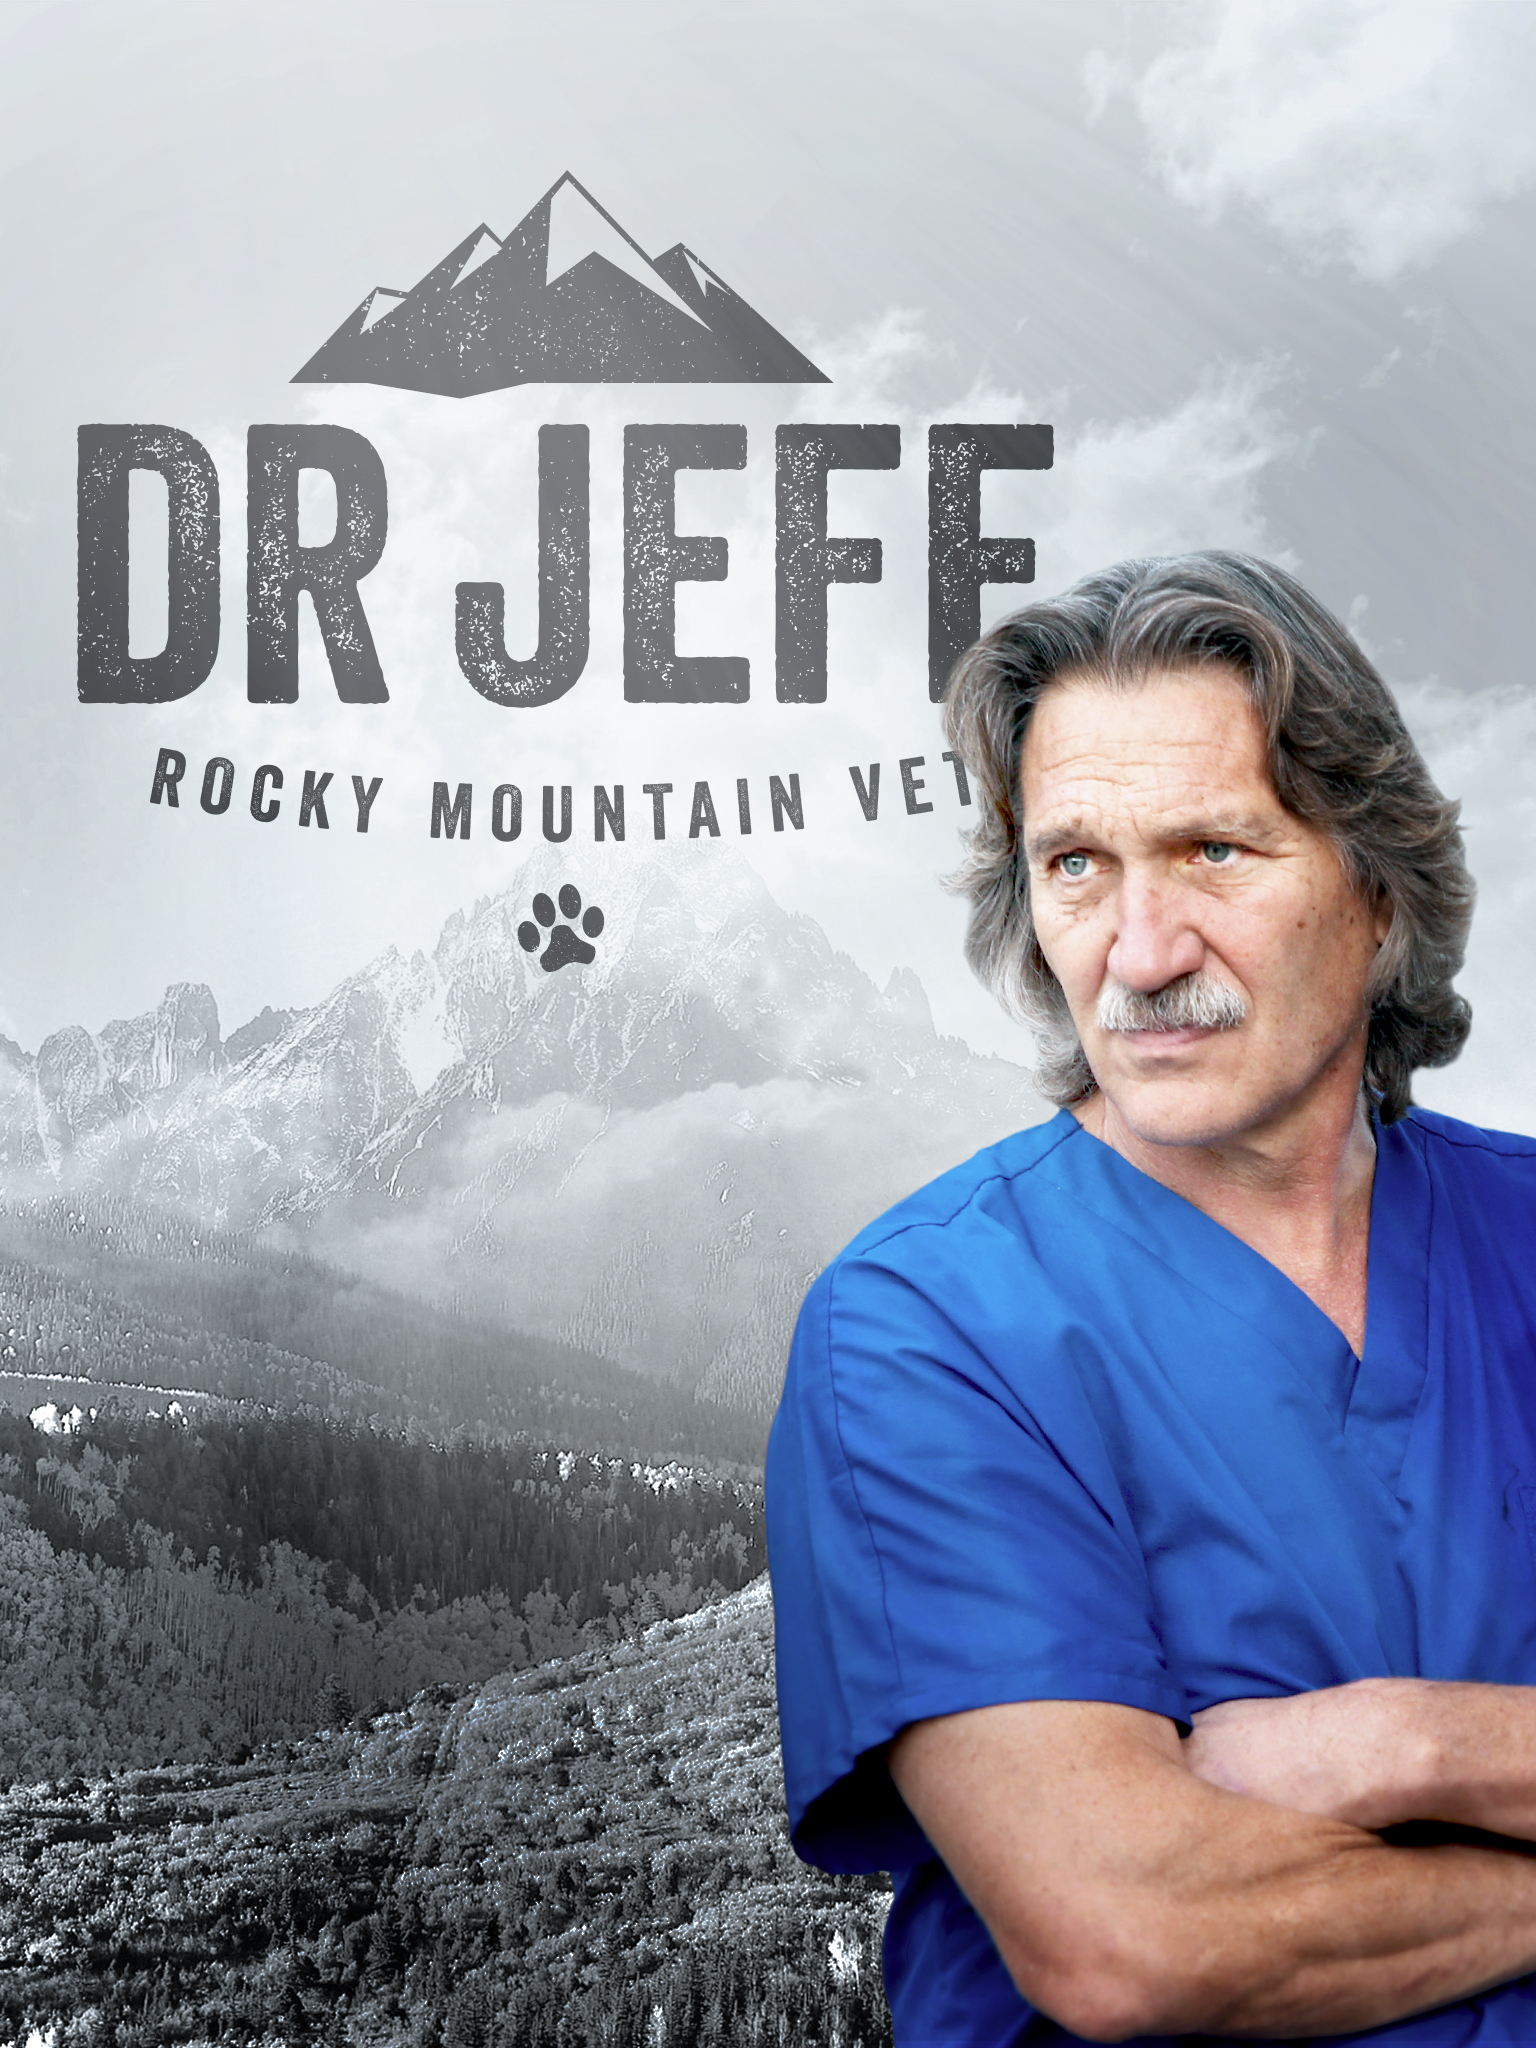 Dr. Jeff: Rocky Mountain Vet - Season 7 Episode 5 - Petra's Pigs